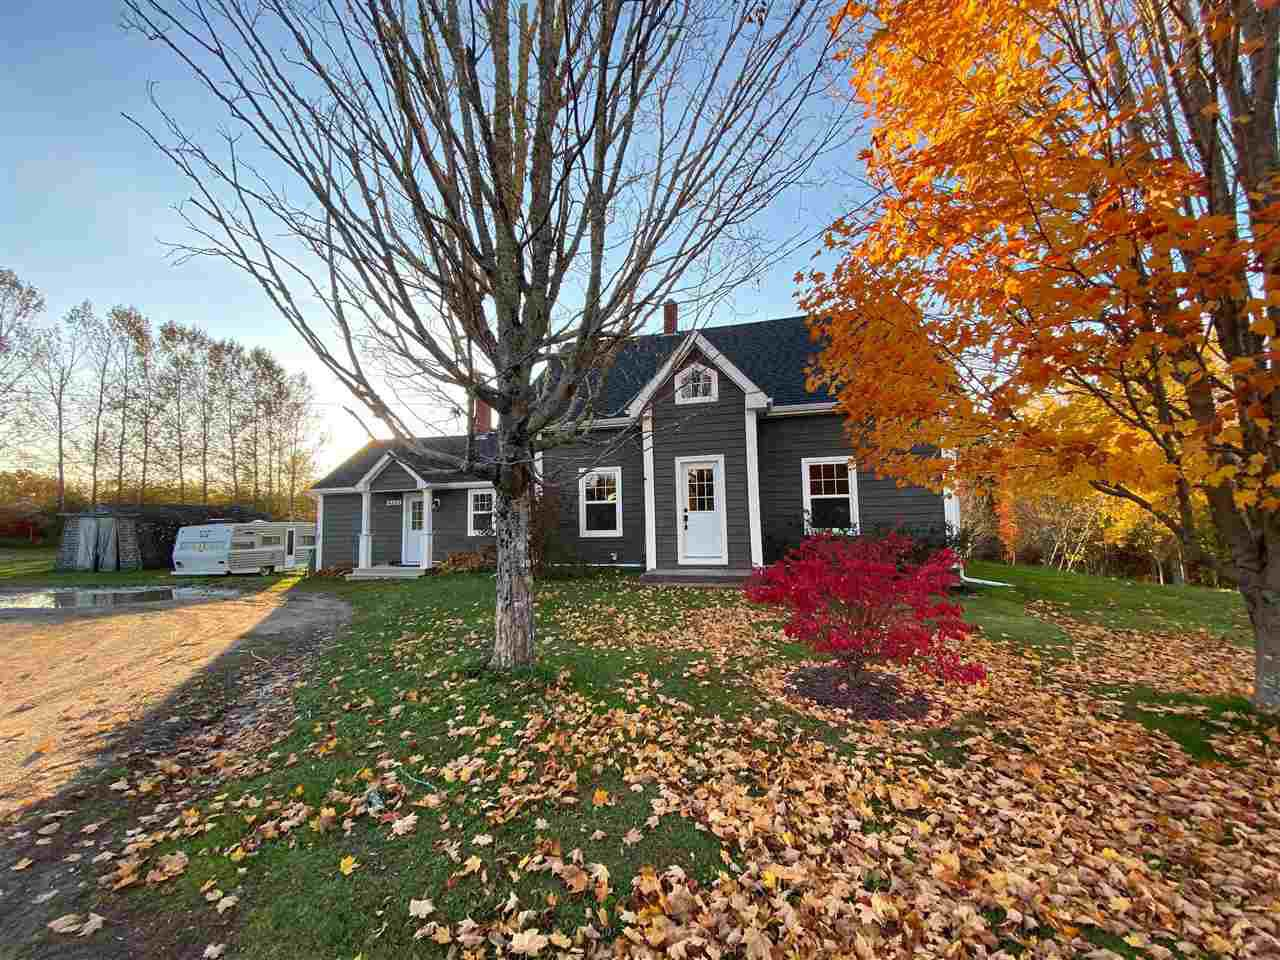 Main Photo: 4333 Highway 12 in South Alton: 404-Kings County Farm for sale (Annapolis Valley)  : MLS®# 202021996